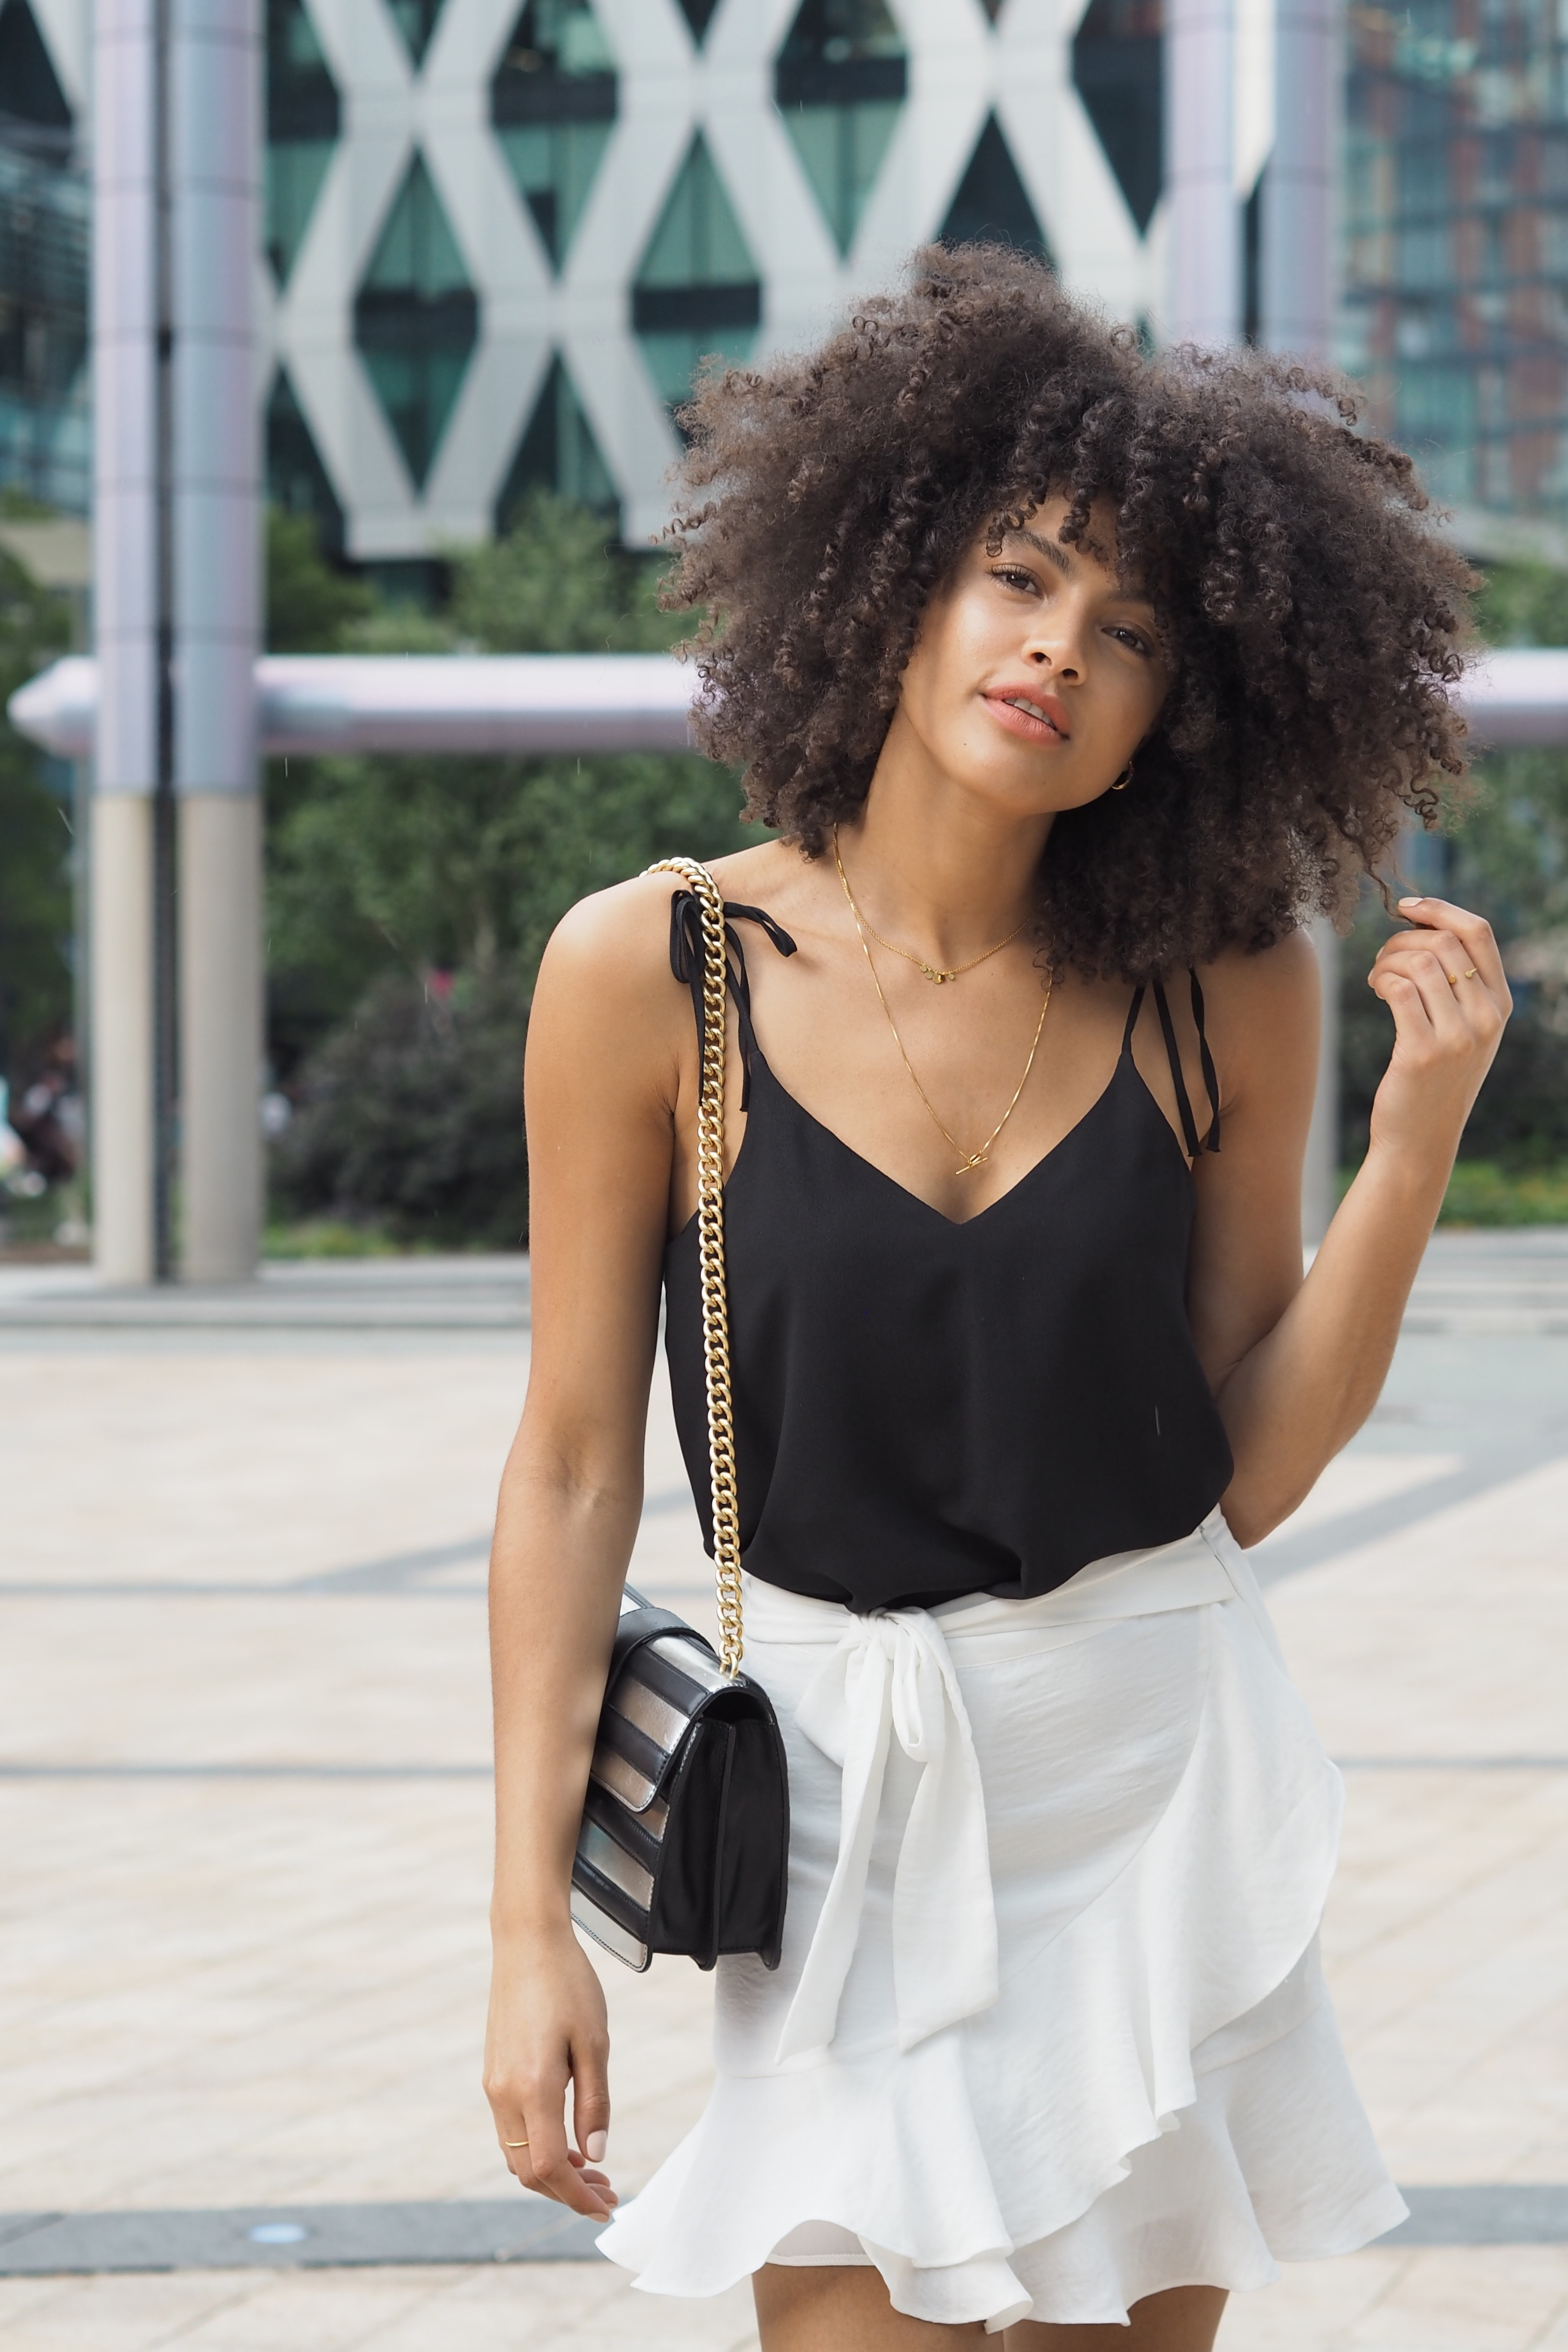 White Ruffle Mini Skirt and Black Cami Summer Outfit